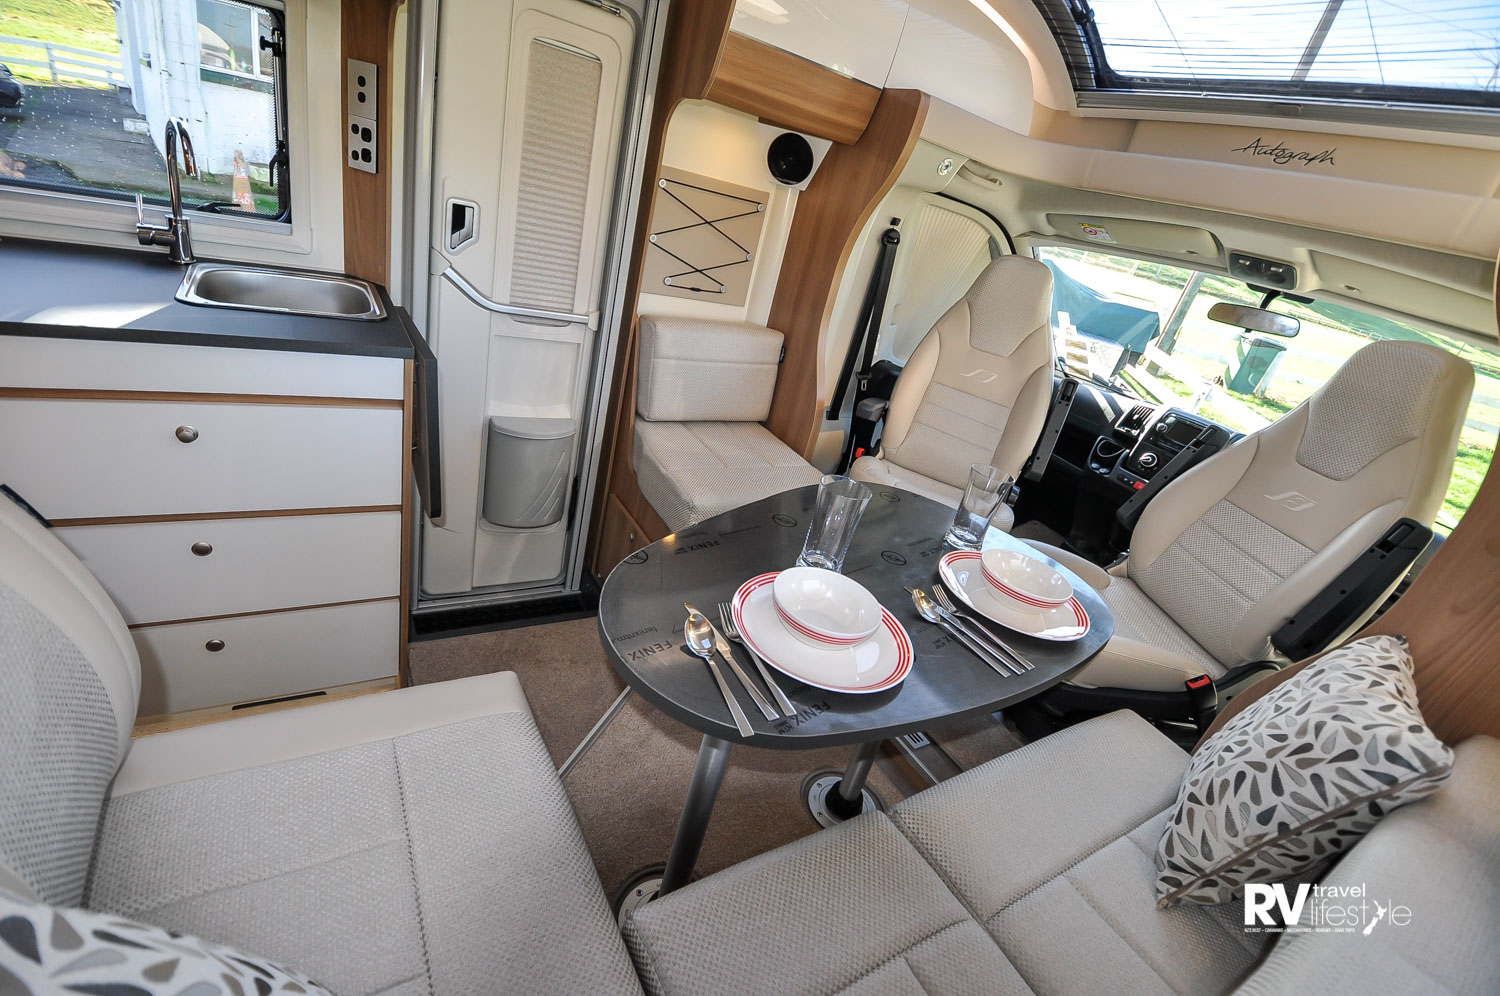 The dinette area set up for dining, the habitation entry door is on the passenger left side of the vehicle